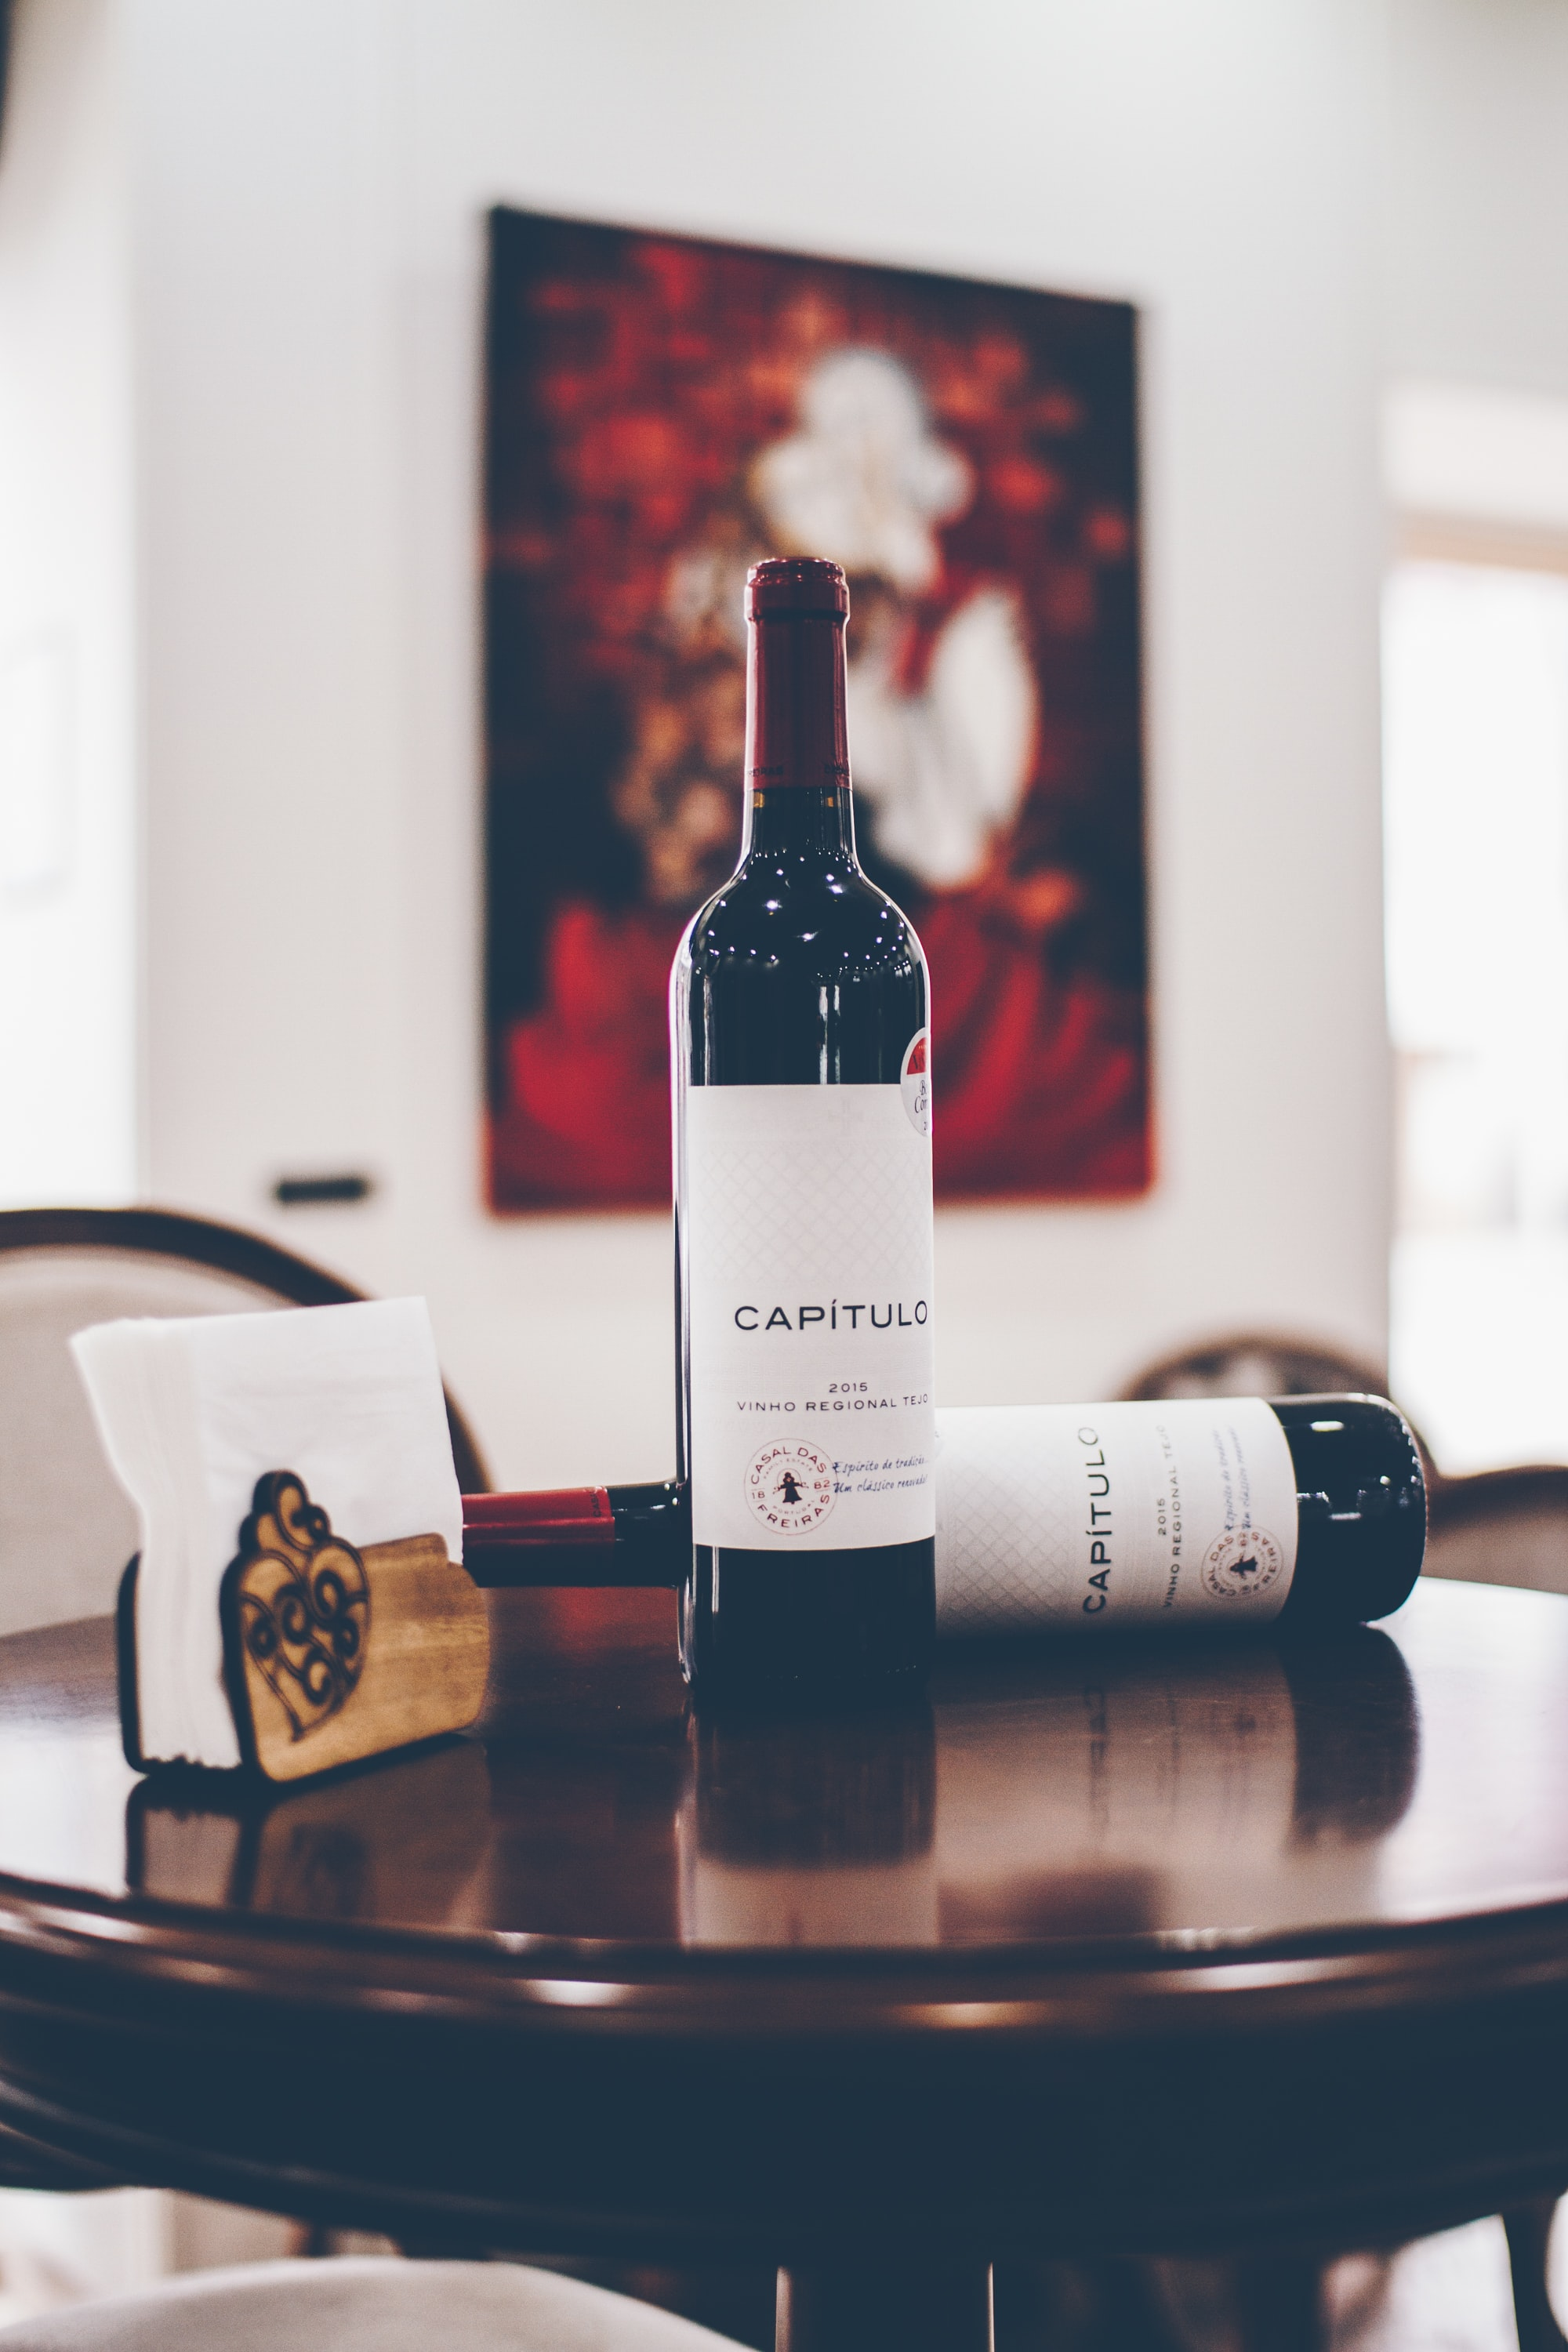 A bottle of red wine on a dining table.